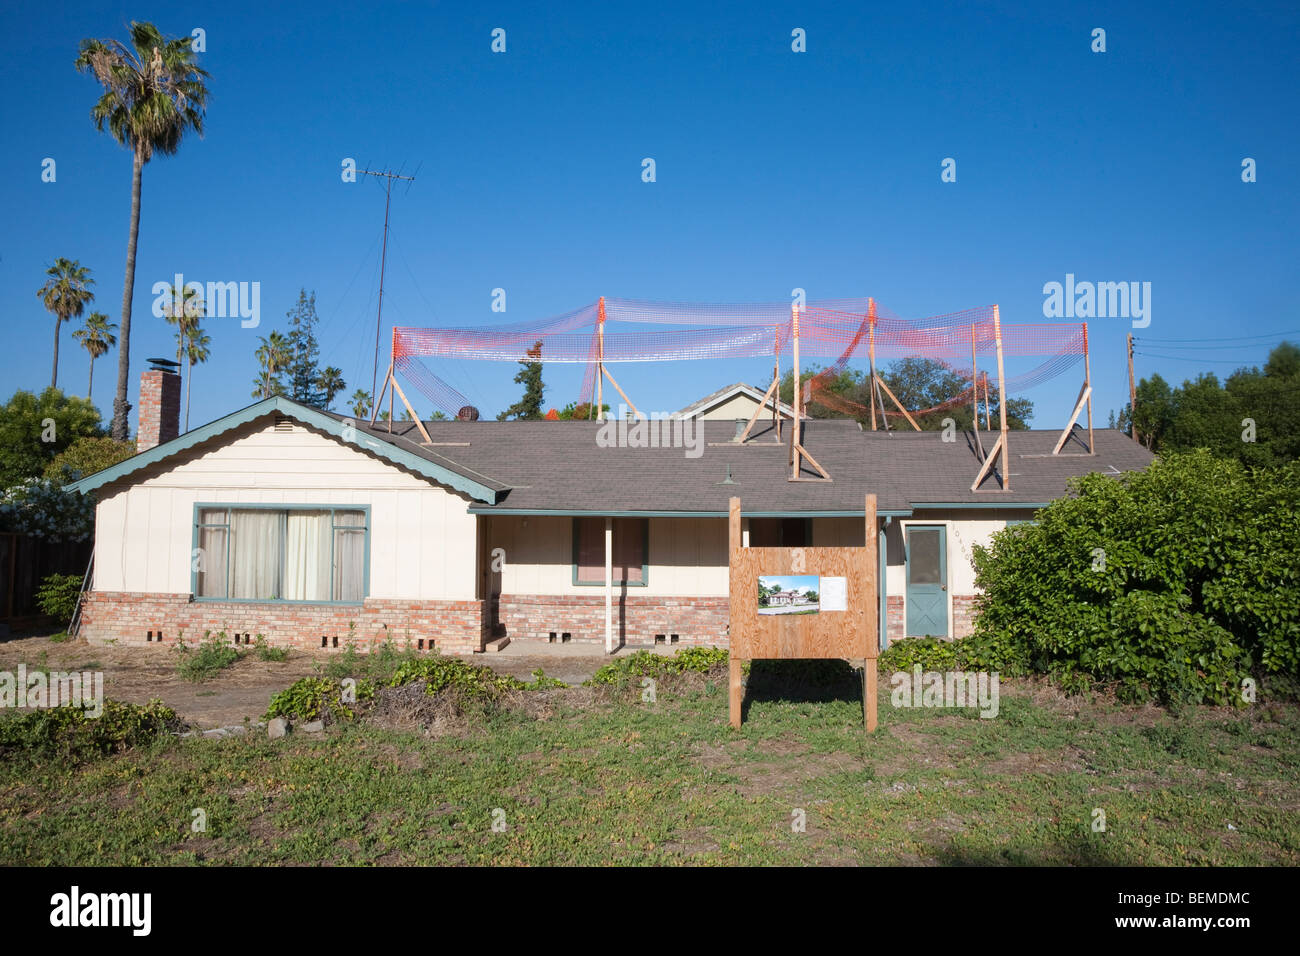 Small single family home ready for major construction project. It will be demolished and replaced. Silicon Valley, Stock Photo